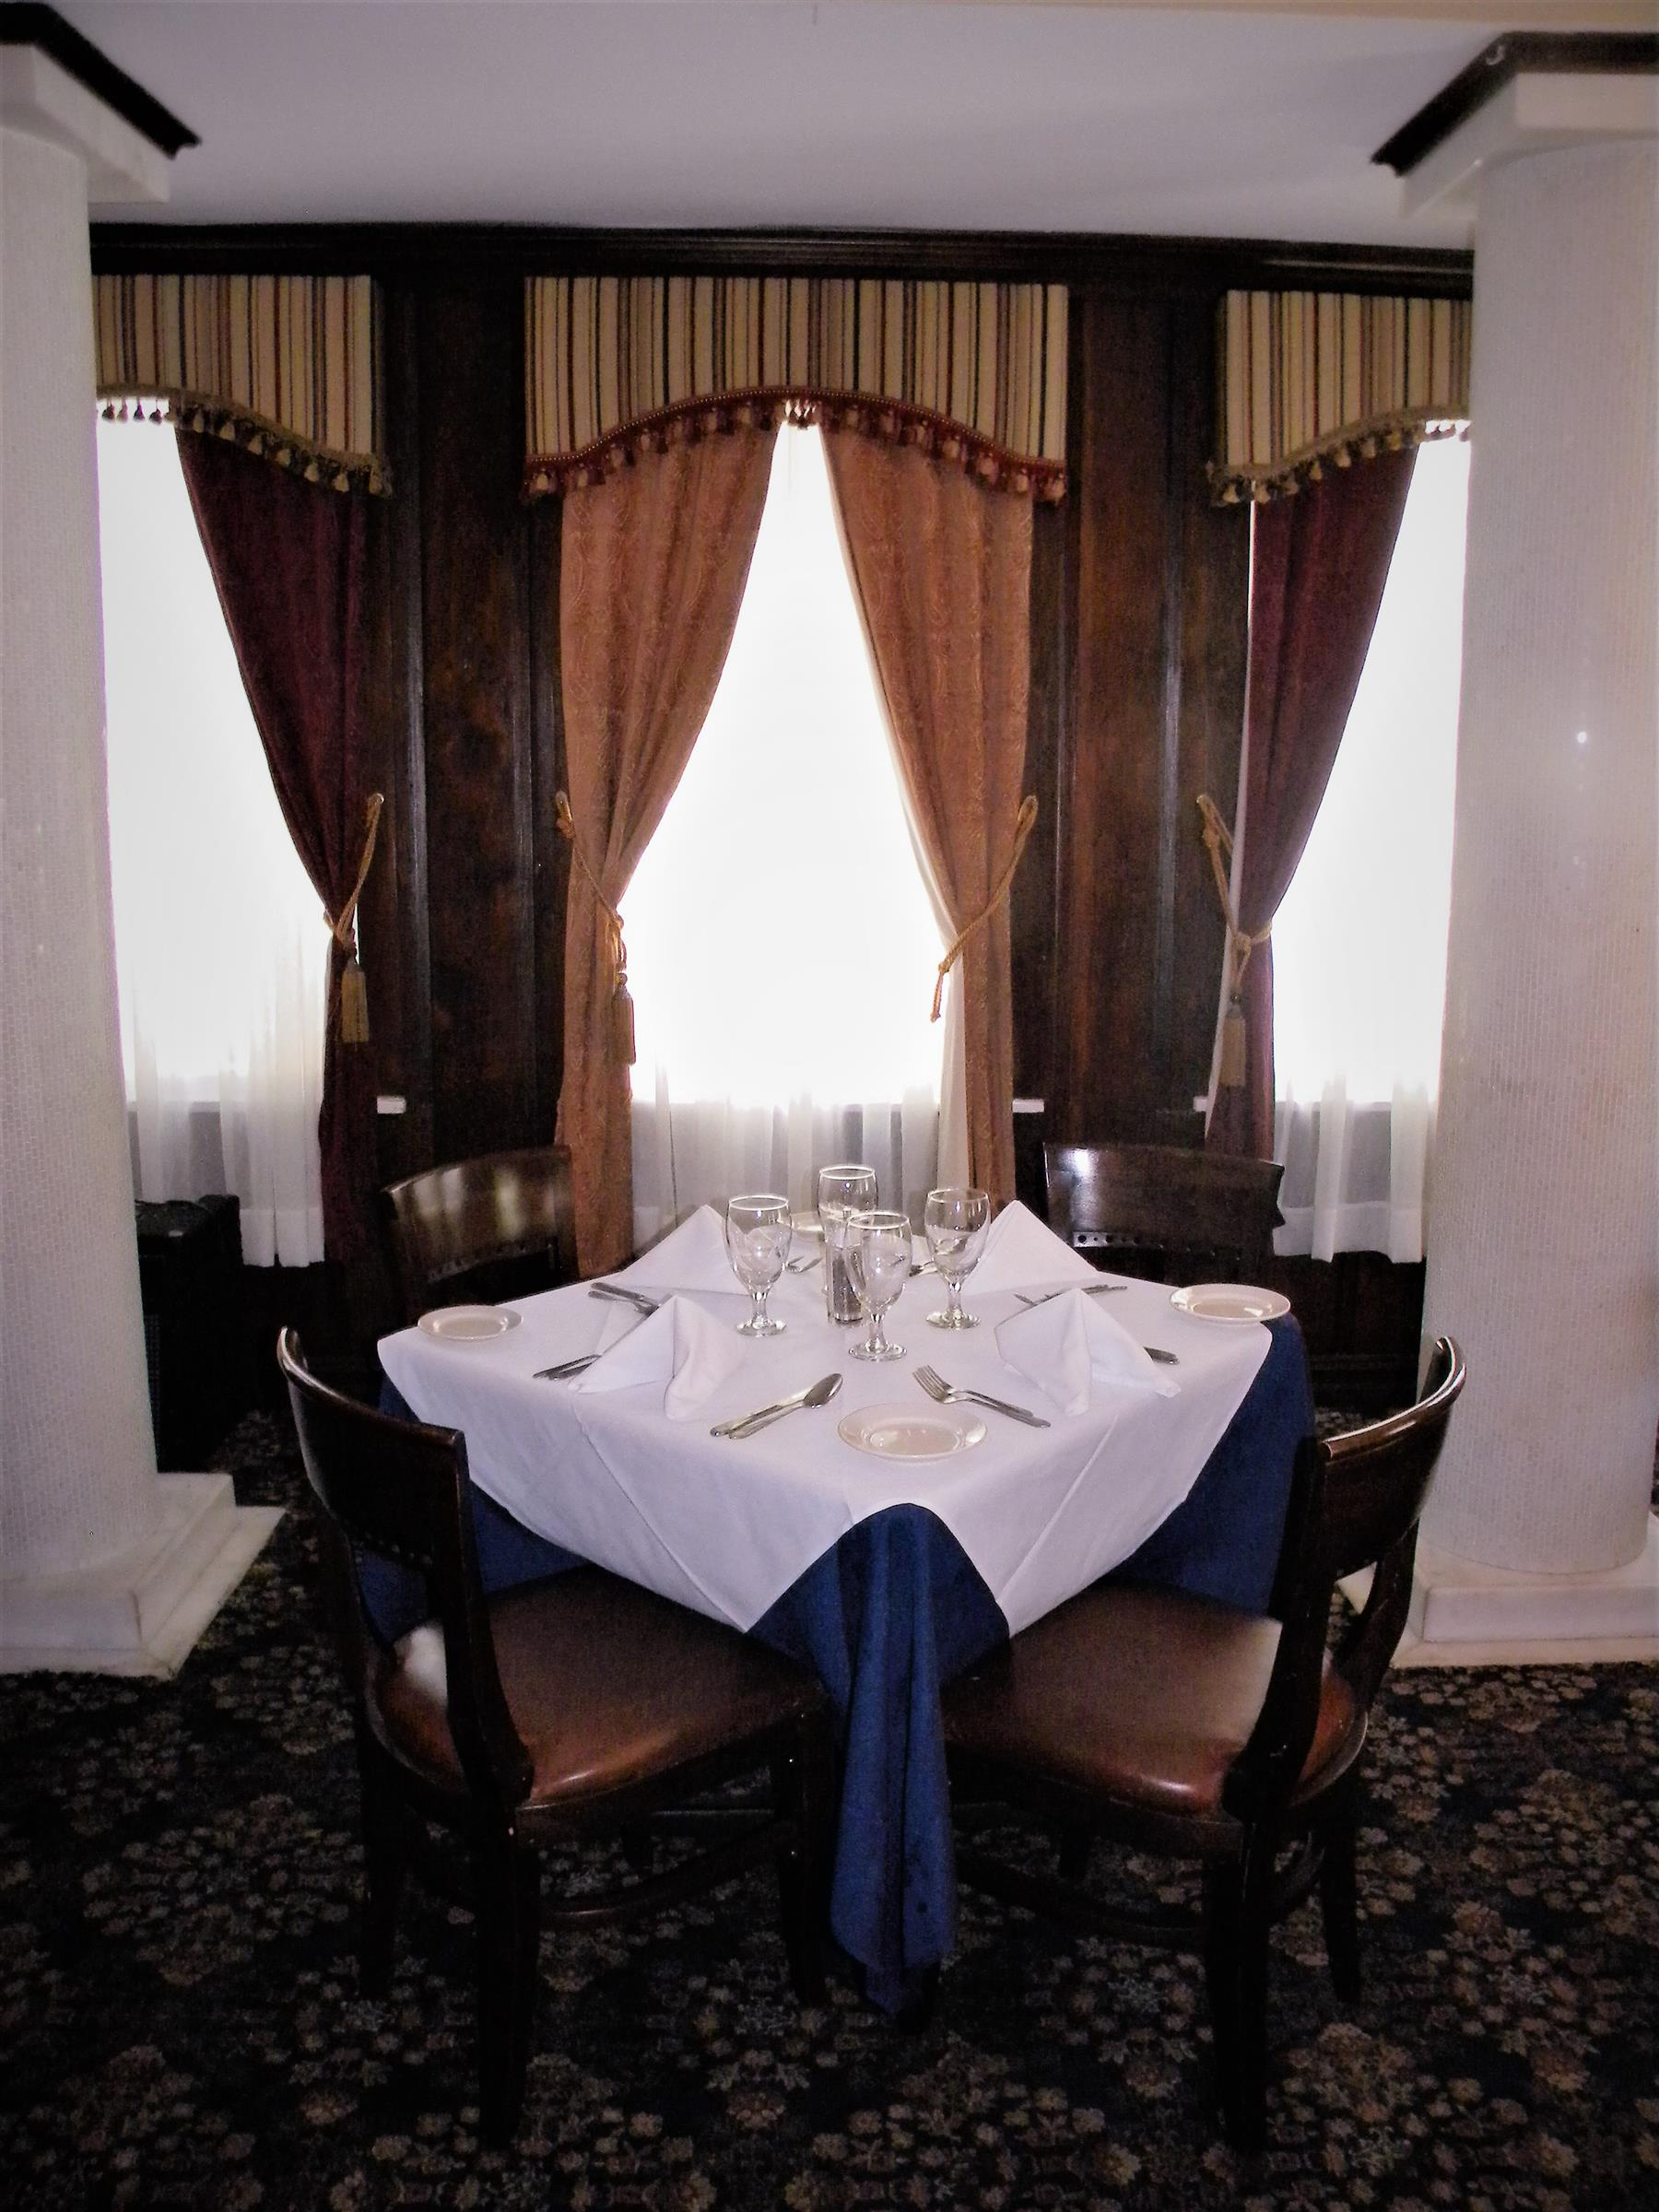 an indoor table with a white table cloth and four chairs and place settings